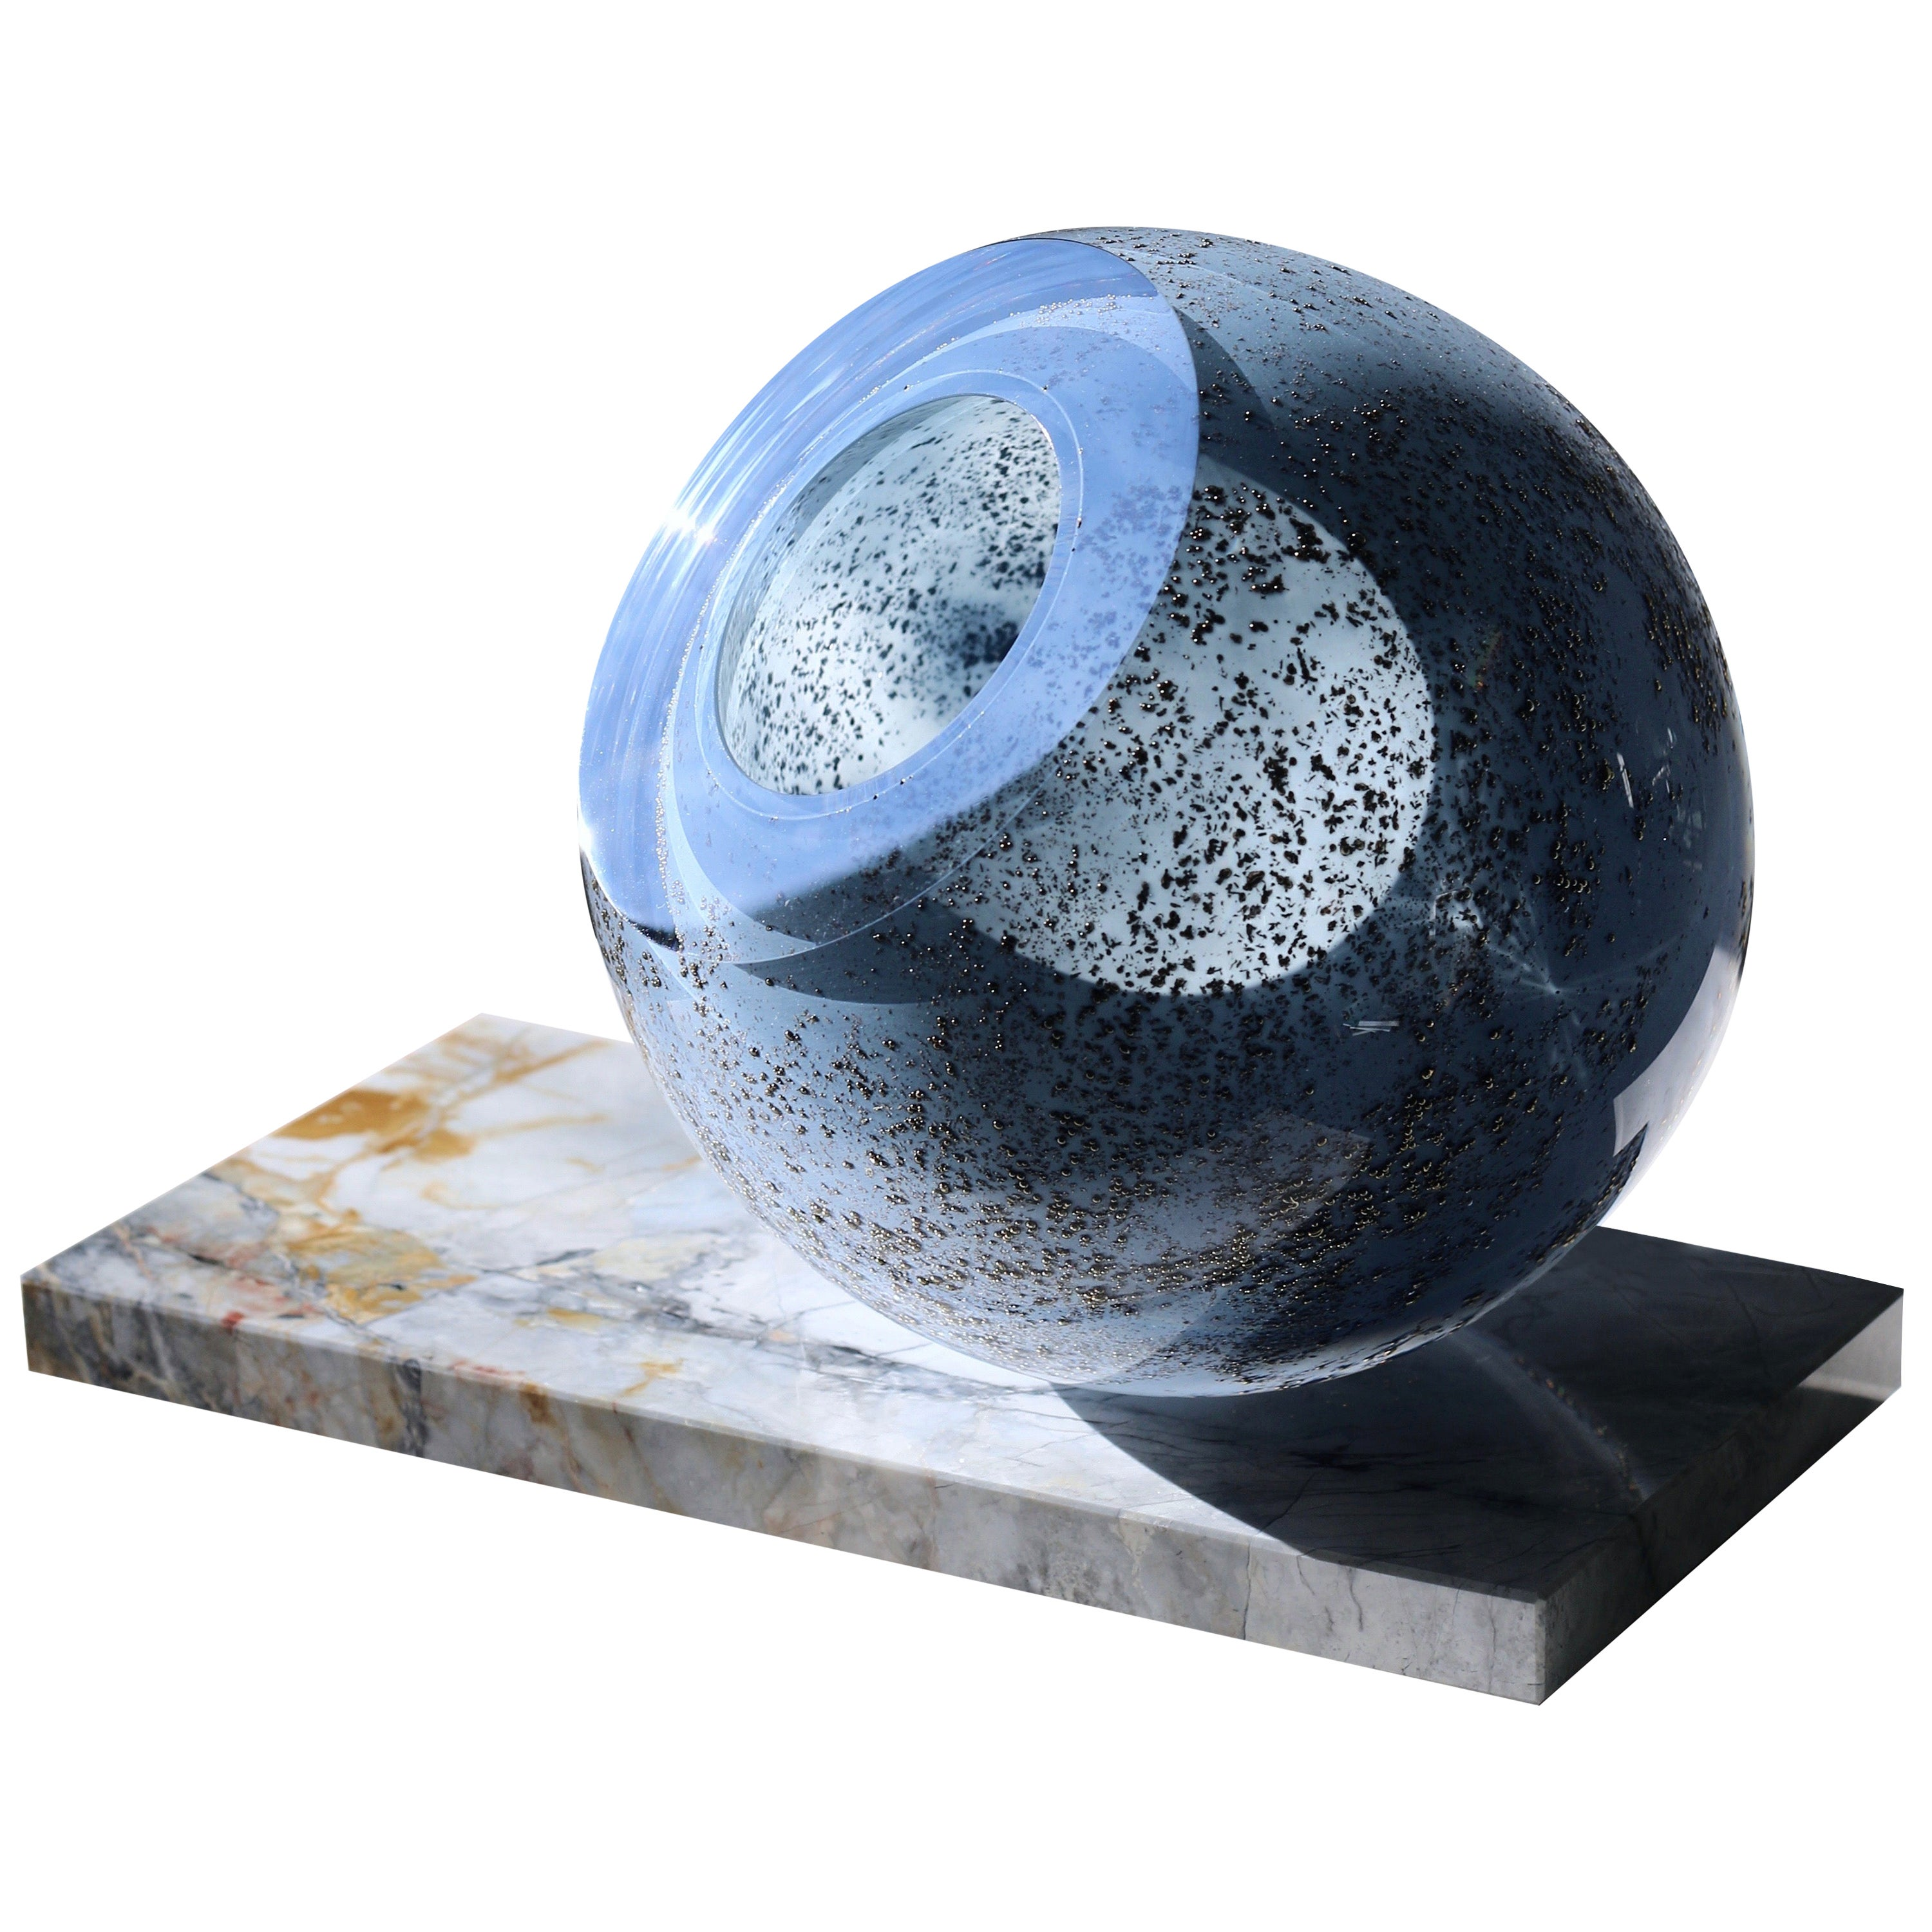 'Globe' Sculptural Vase in Mouth-Blown Glass and Marble by Experimental, 2020